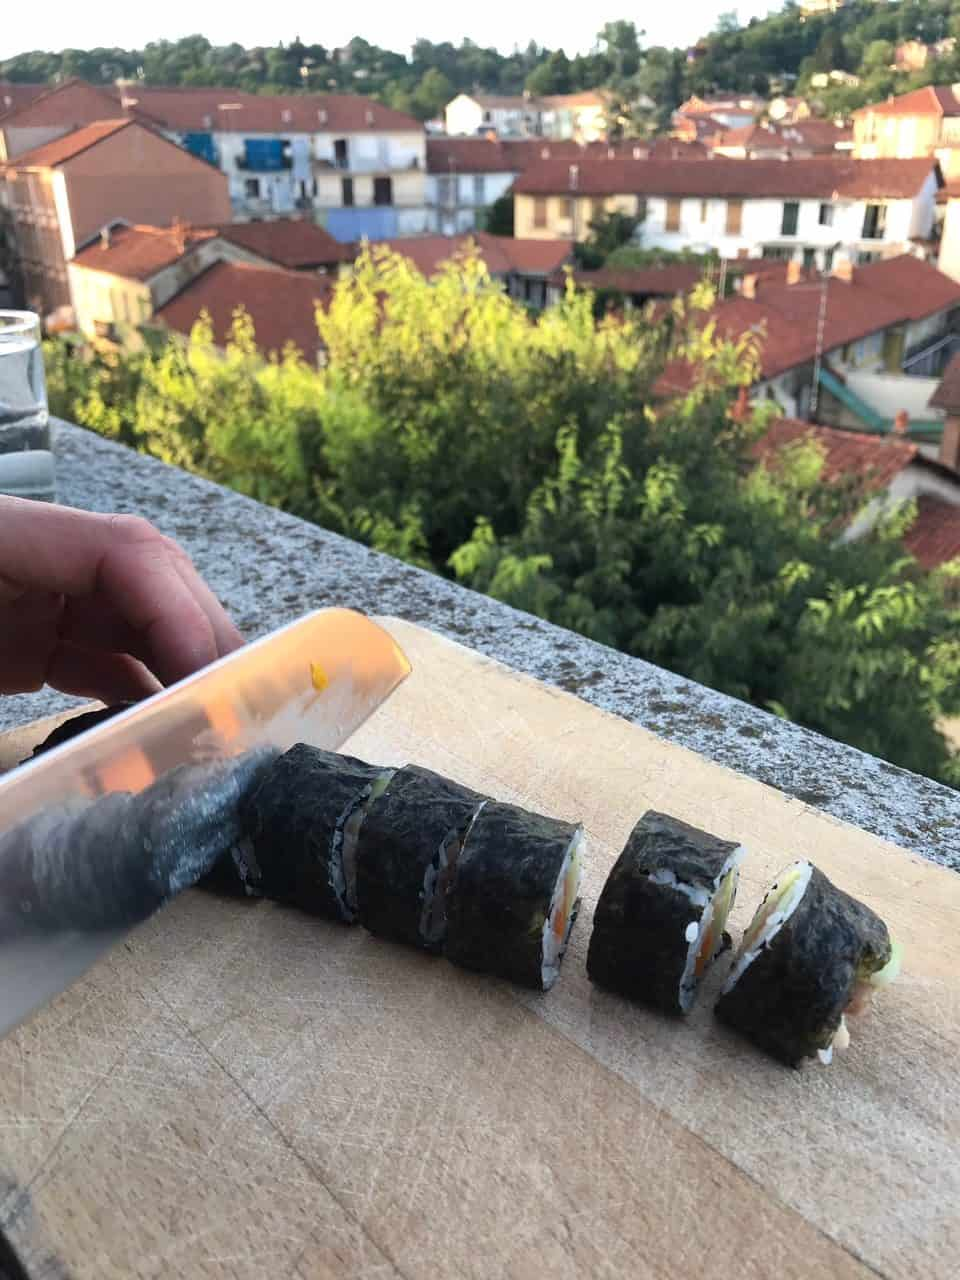 CBD Sushi on the chopping board